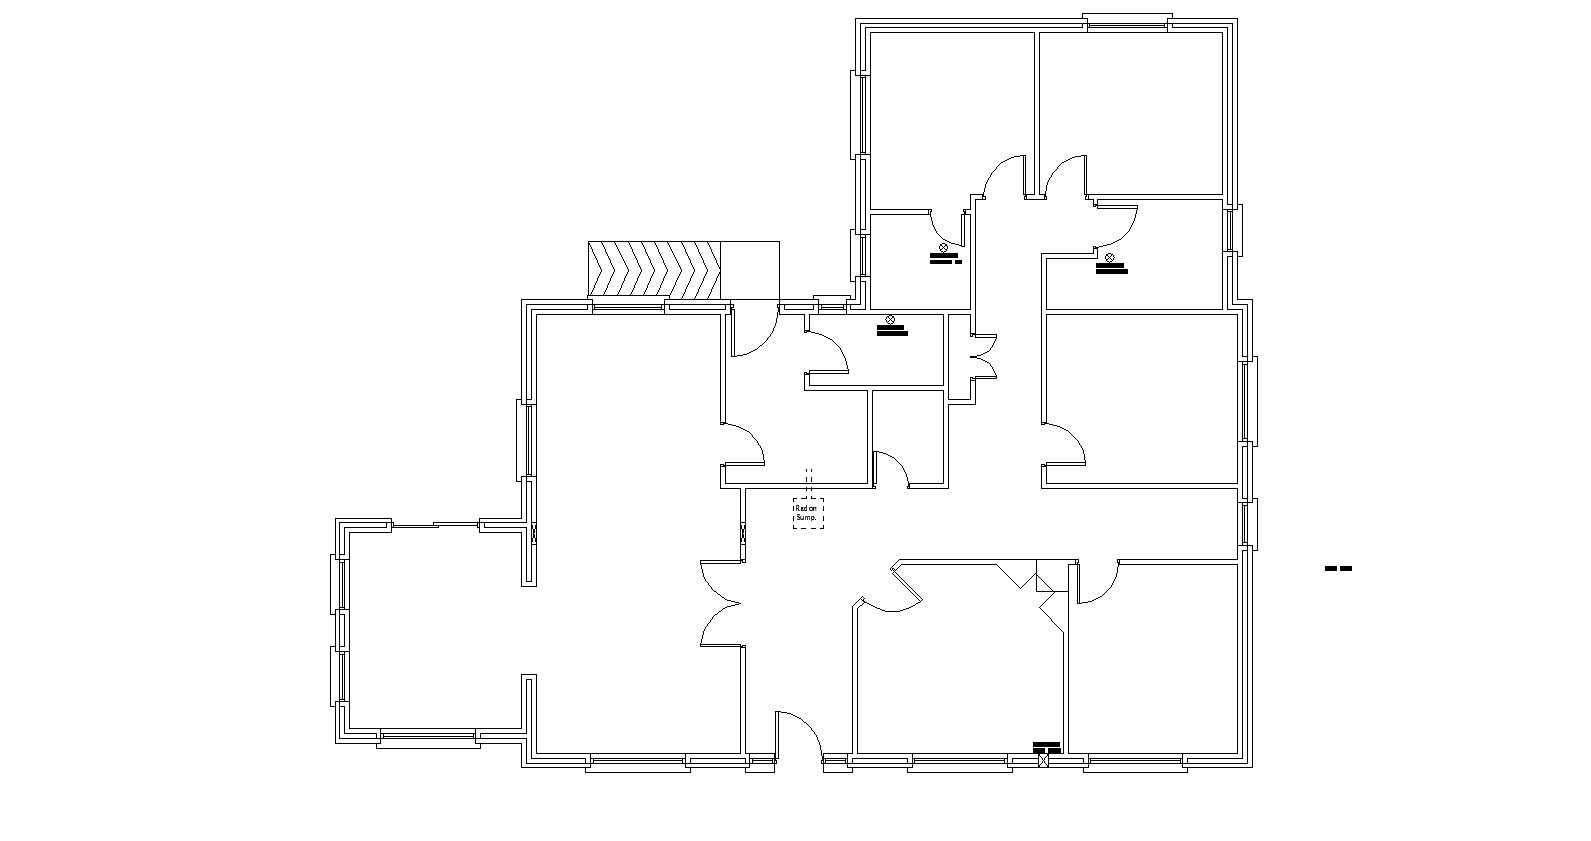 electrical house plan layout floor plan of house with electric layout in autocad cadbull  floor plan of house with electric